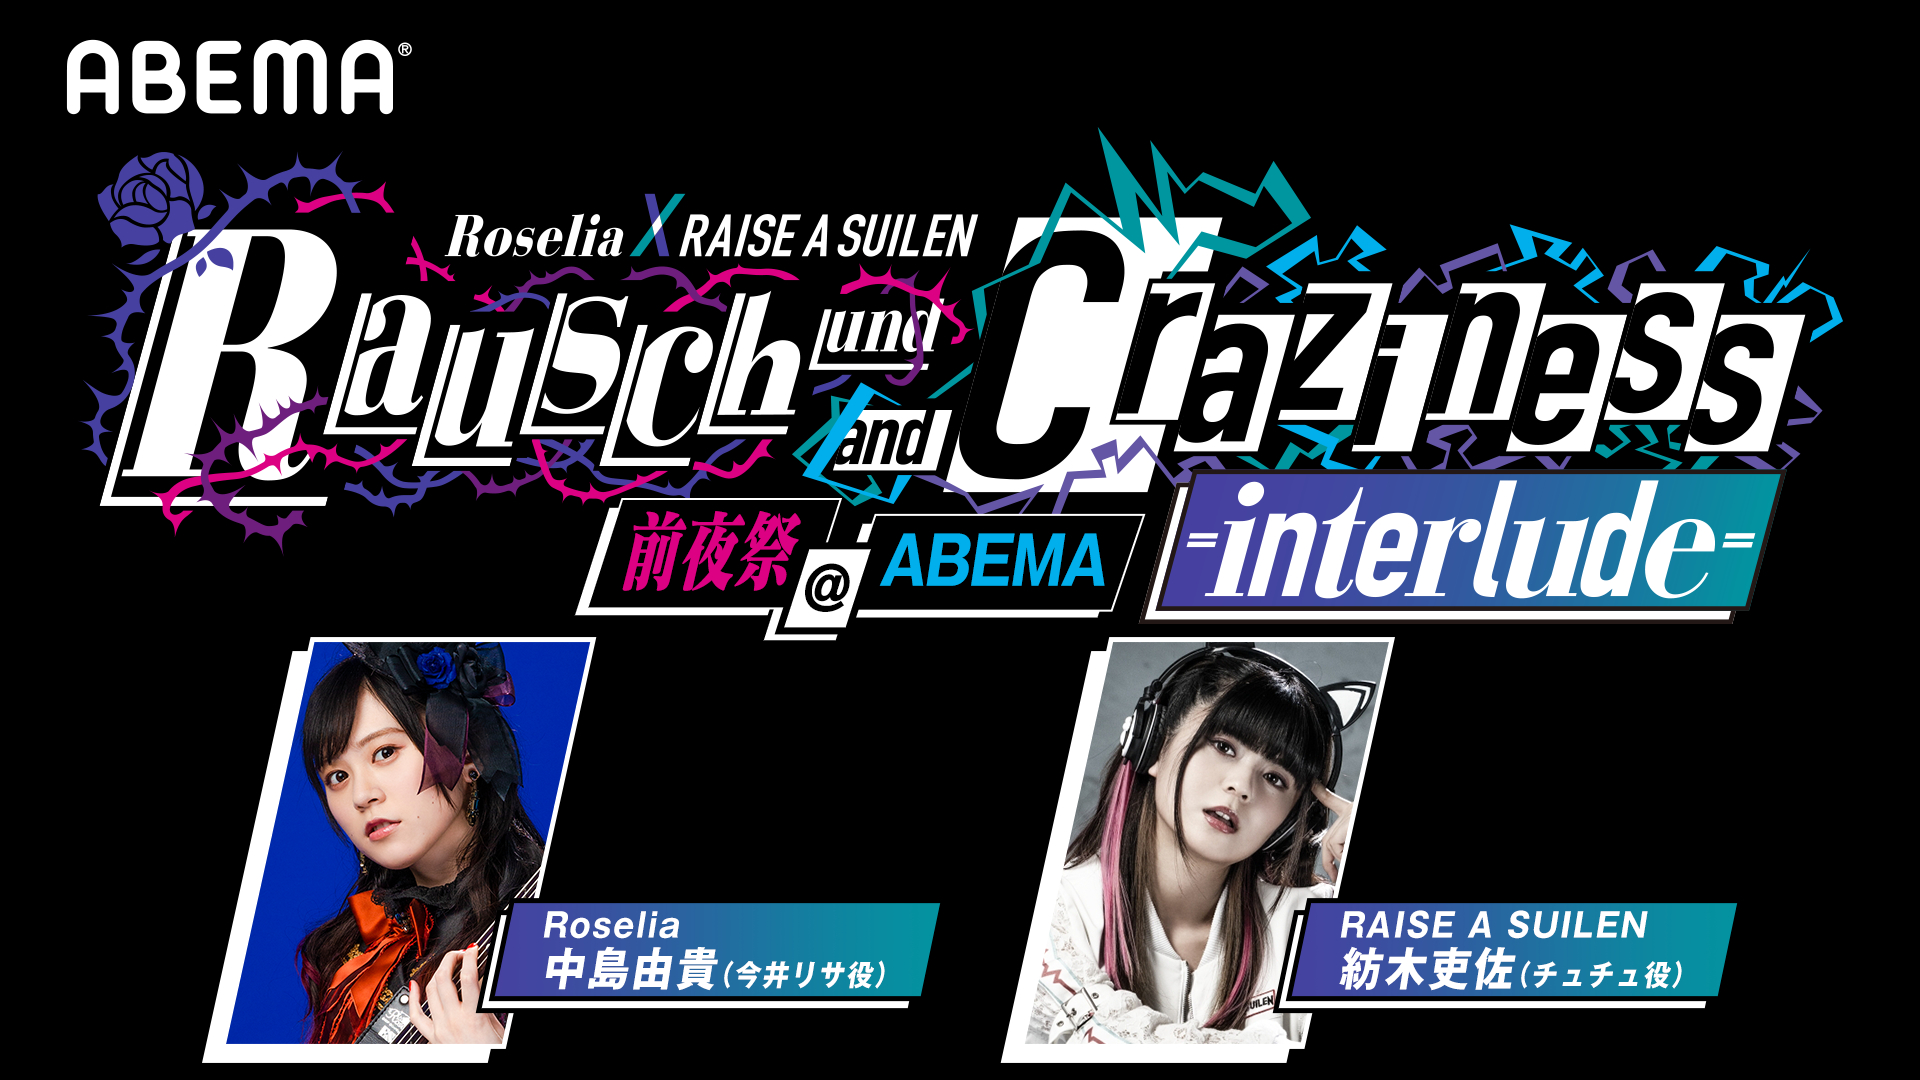 『「Rausch und/and Craziness -interlude-」前夜祭@ABEMA』告知 (C)BanG Dream! Project (C)Craft Egg Inc. (C)bushiroad All Rights Reserved.